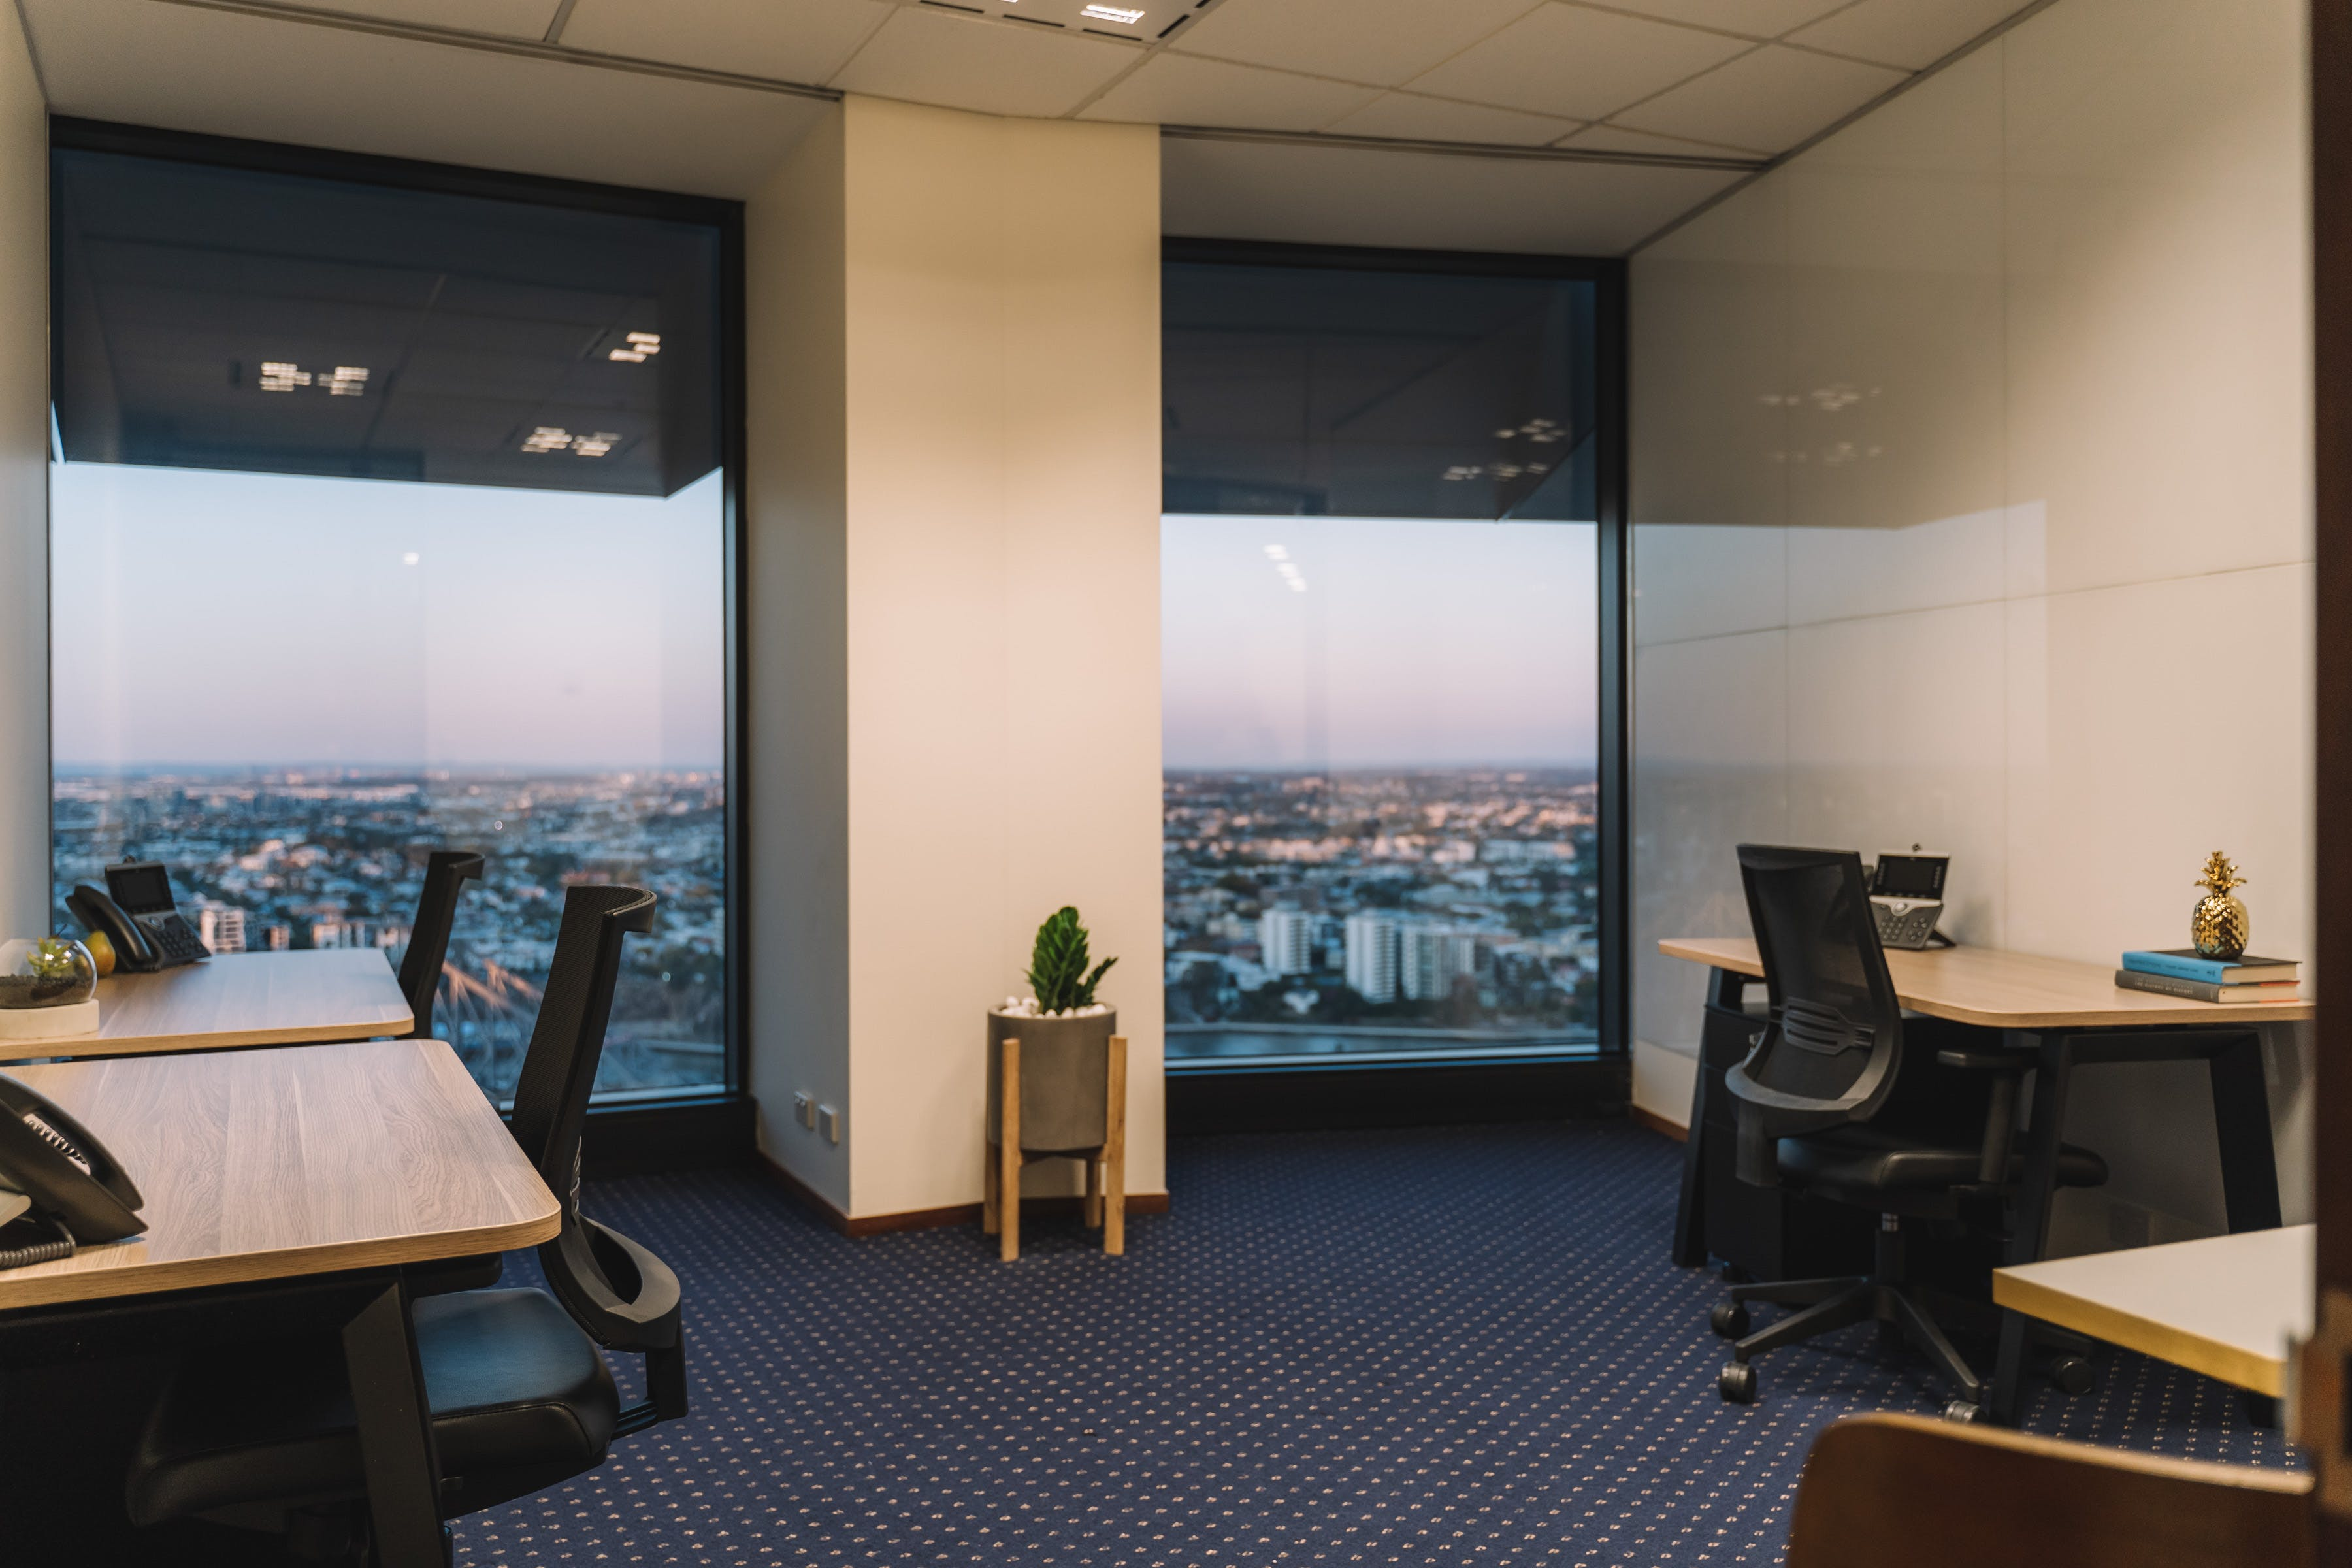 Collaborative workspace for 10, serviced office at Nishi, image 10